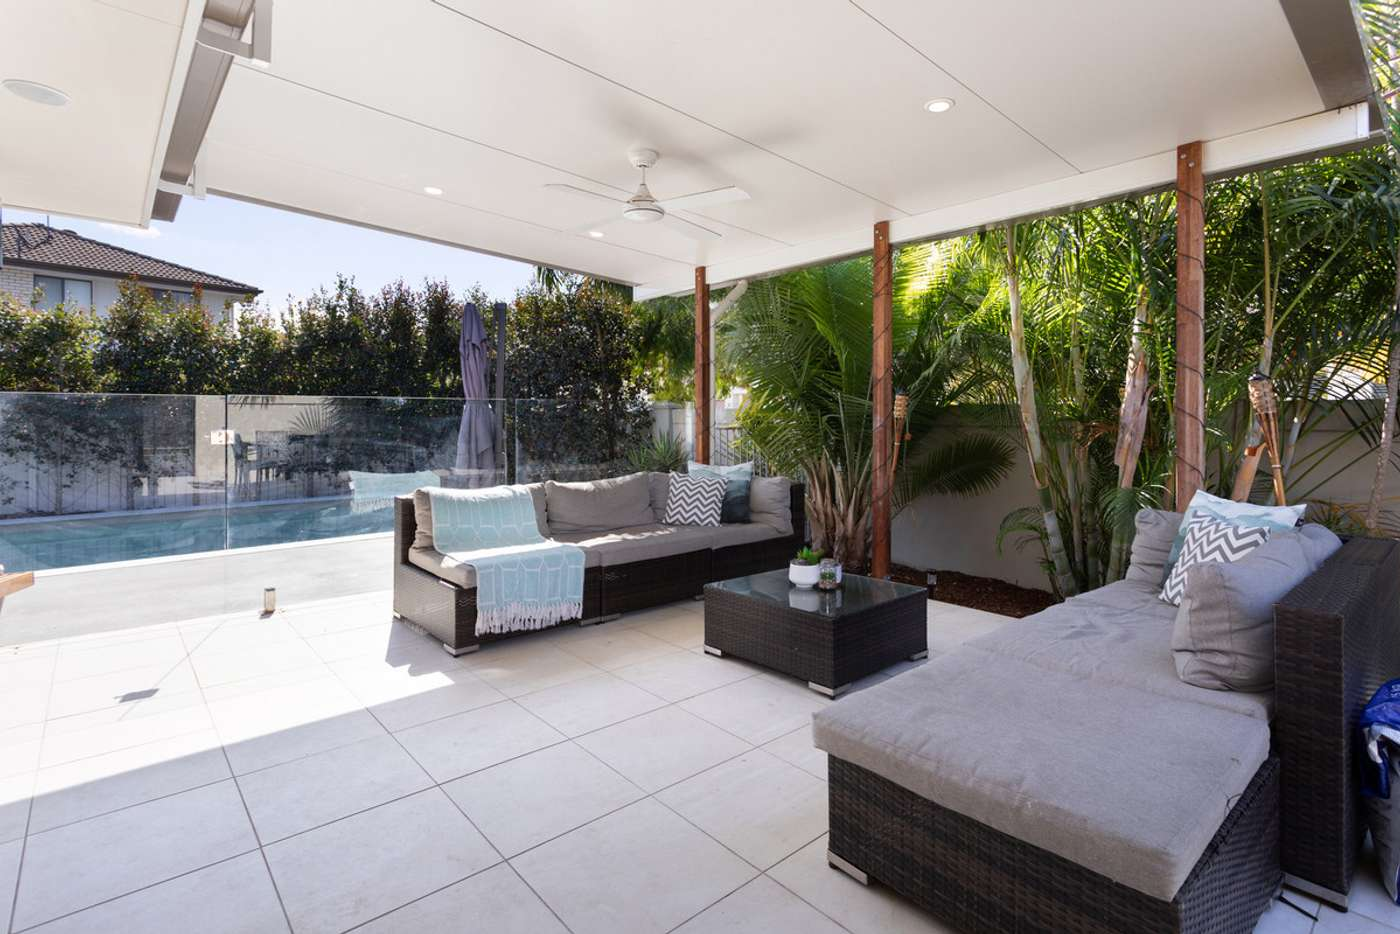 Main view of Homely house listing, 3 Rhodium Crescent, Hope Island QLD 4212